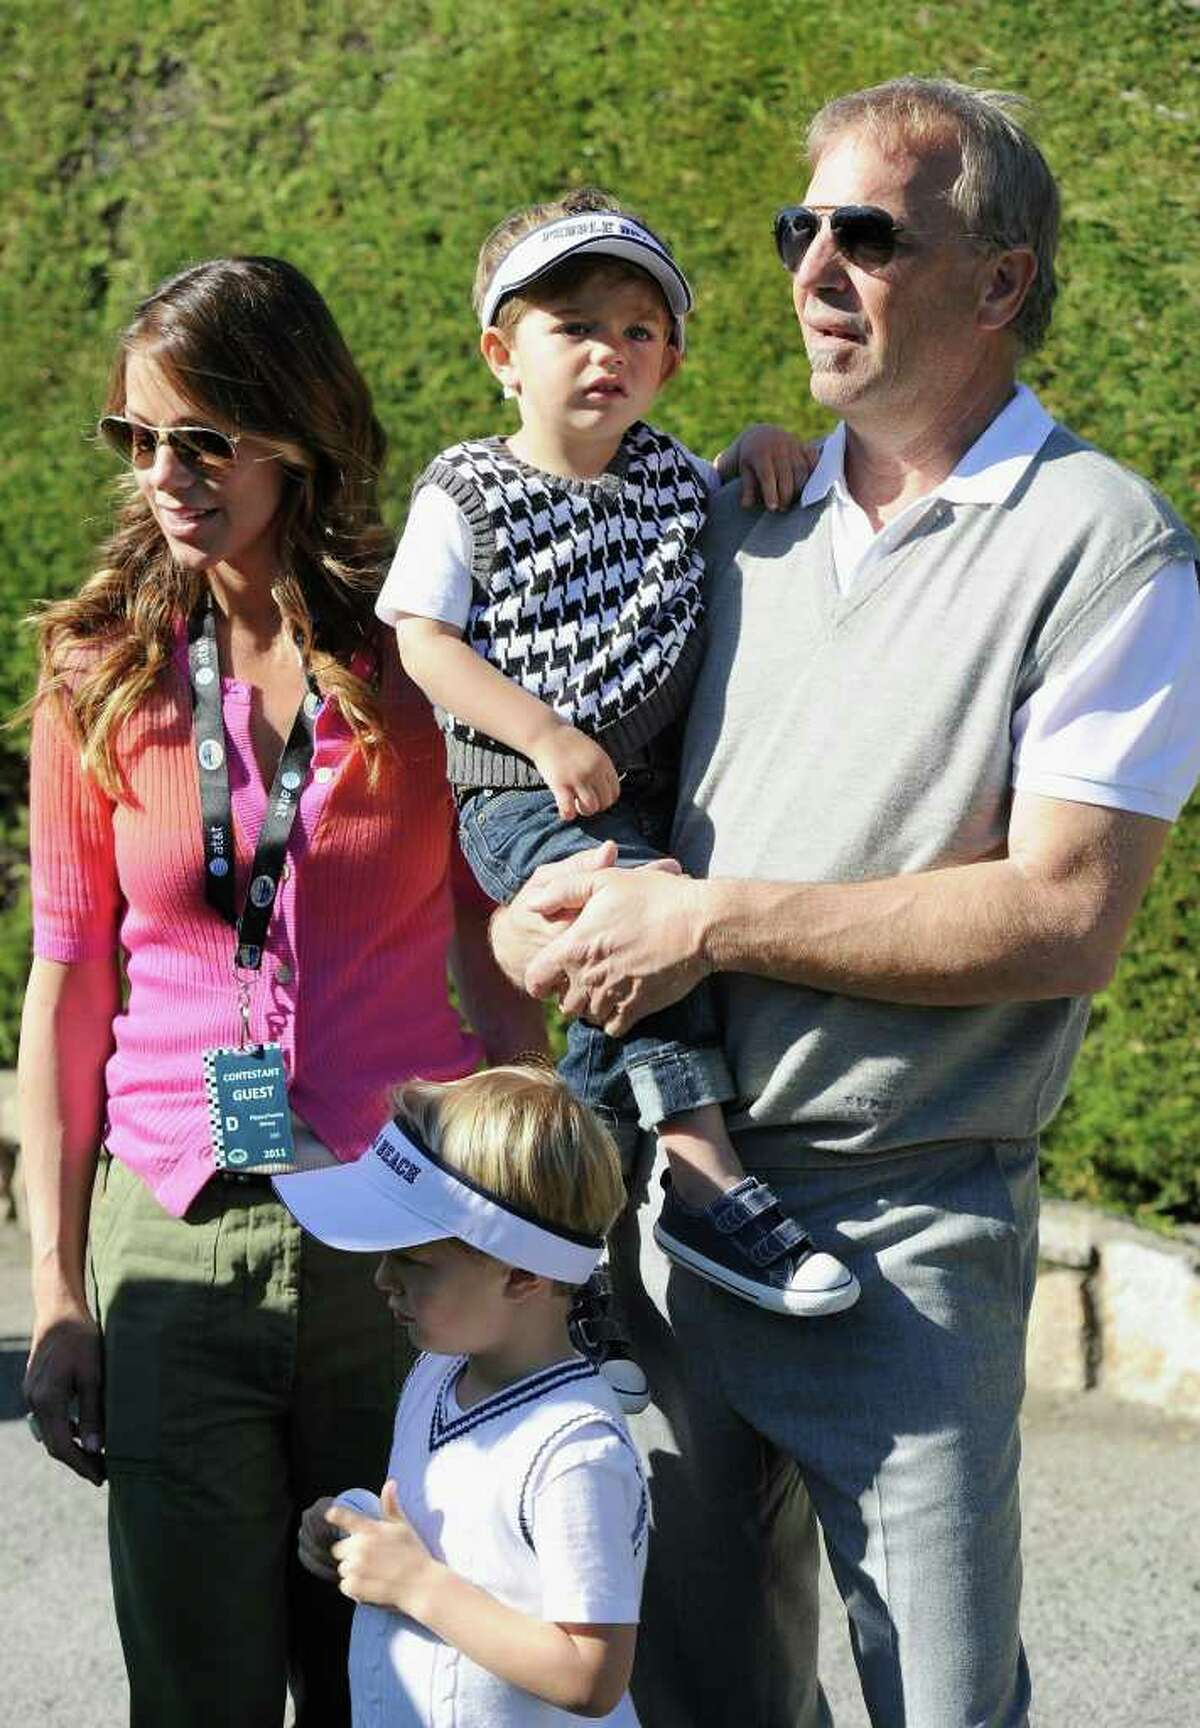 PEBBLE BEACH, CA - FEBRUARY 09: Actor Kevin Costner with family members during the 3M Celebrity Challenge at the AT&T Pebble Beach National Pro-Am at Pebble Beach Golf Links on February 9, 2011 in Pebble Beach, California. (Photo by Stuart Franklin/Getty Images)